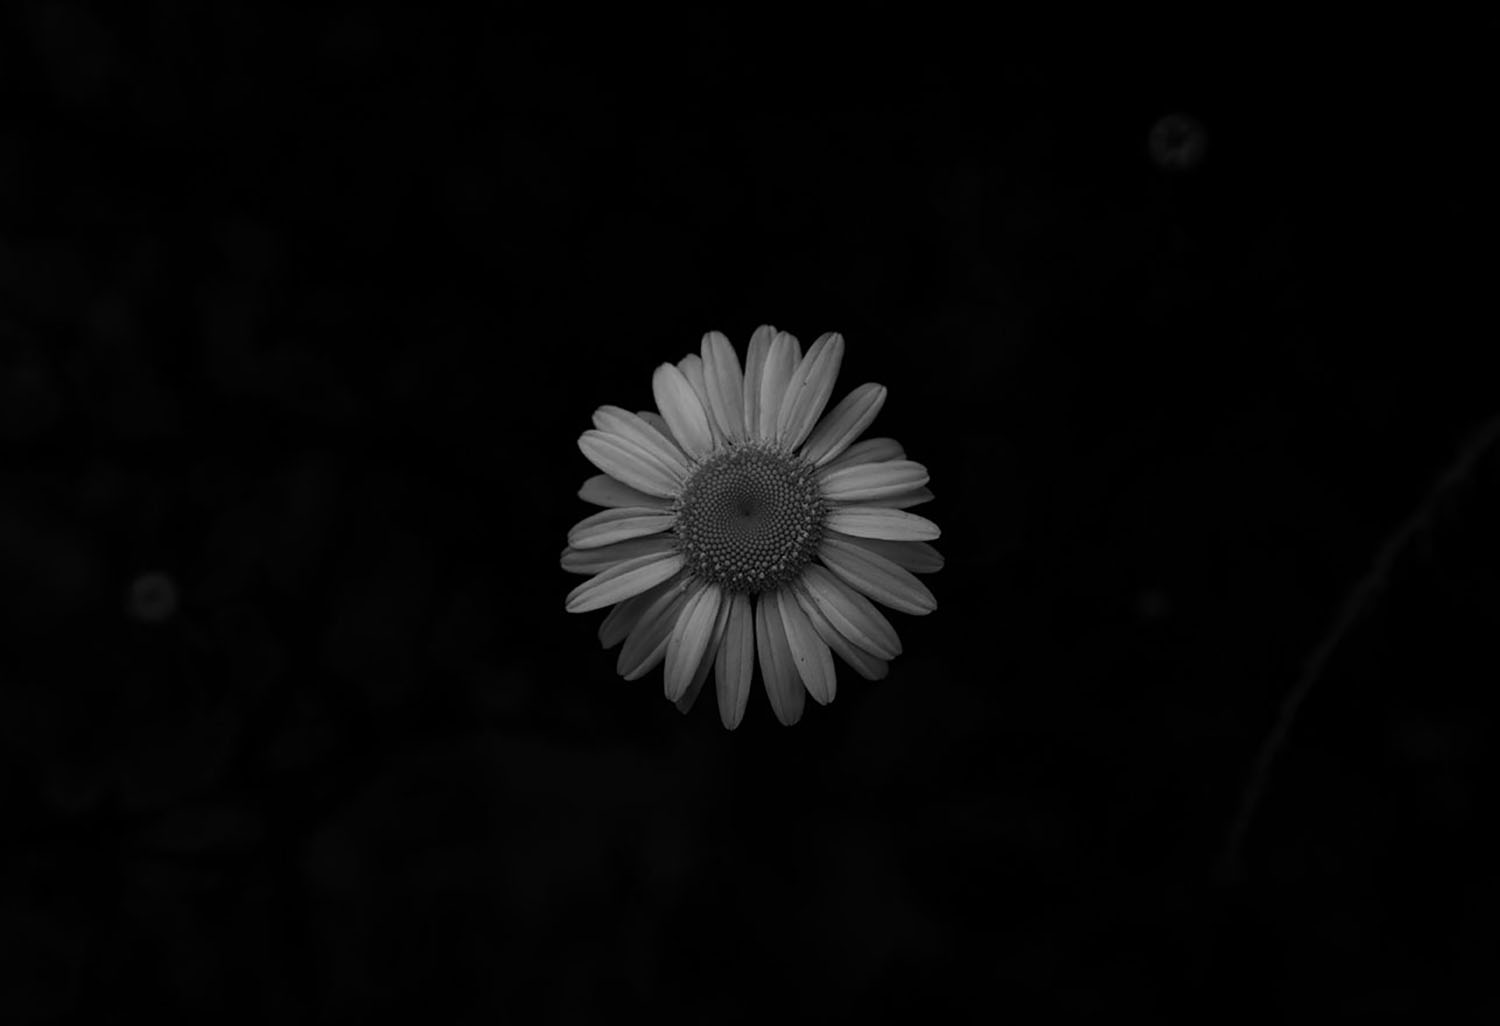 I named this image before I read that about Wendy Whelan, but it was exactly what I feel this flower was saying to me.